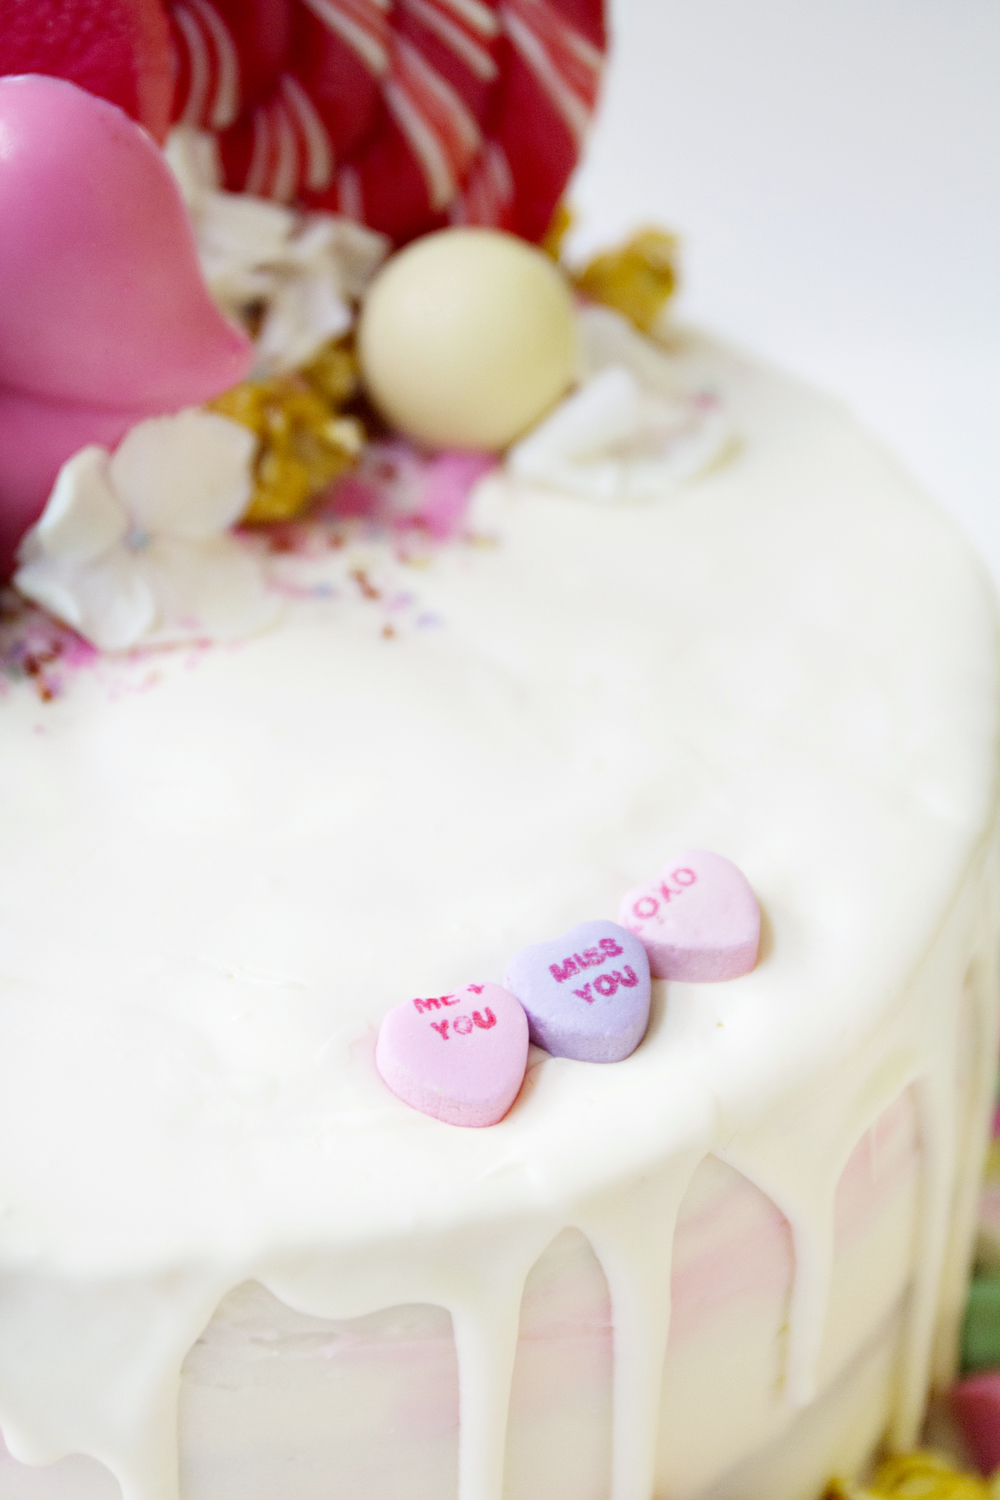 vanilla-cake-recipe-valentines-day-savannah-soiree - ashlie-moncrief-photography